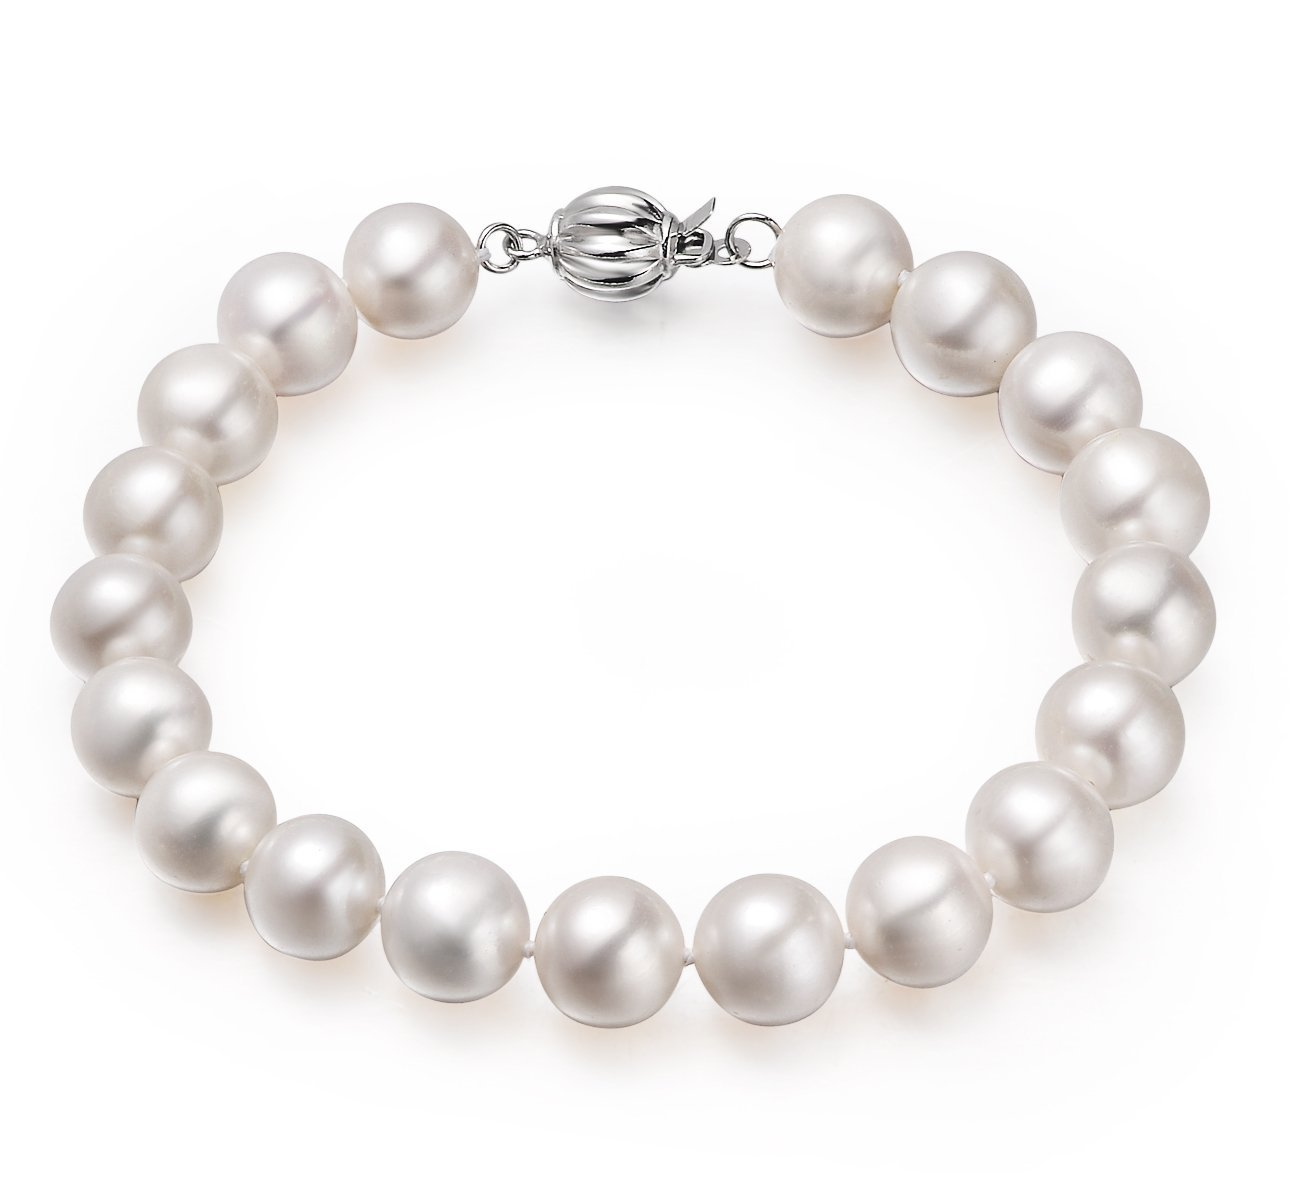 white, 9-10mm, aa+, cultured freshwater pearl bracelet with 925 sterling silver fluted ball